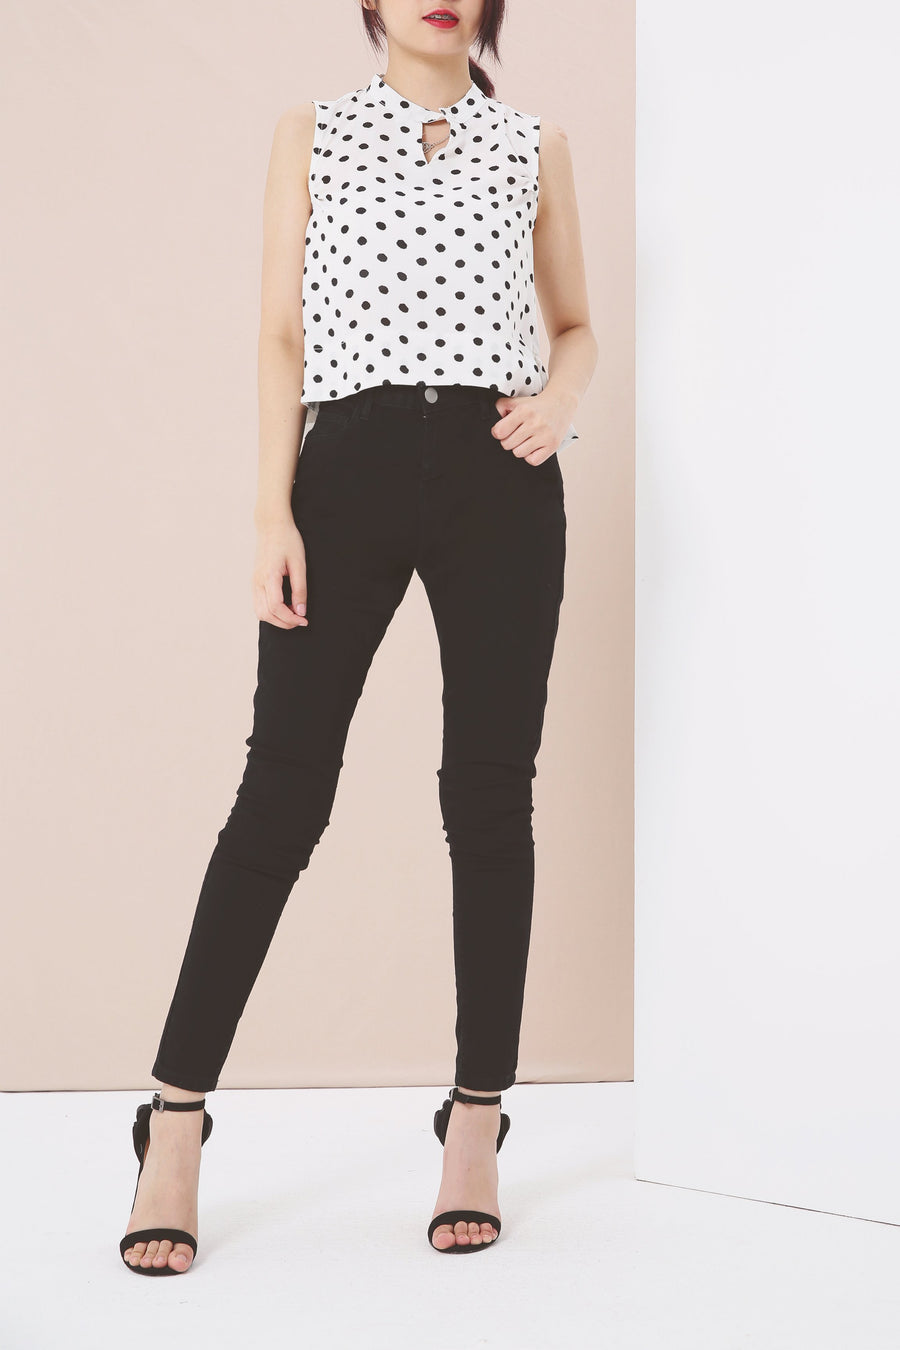 Polka Dot Top 3947 Black / S Tops